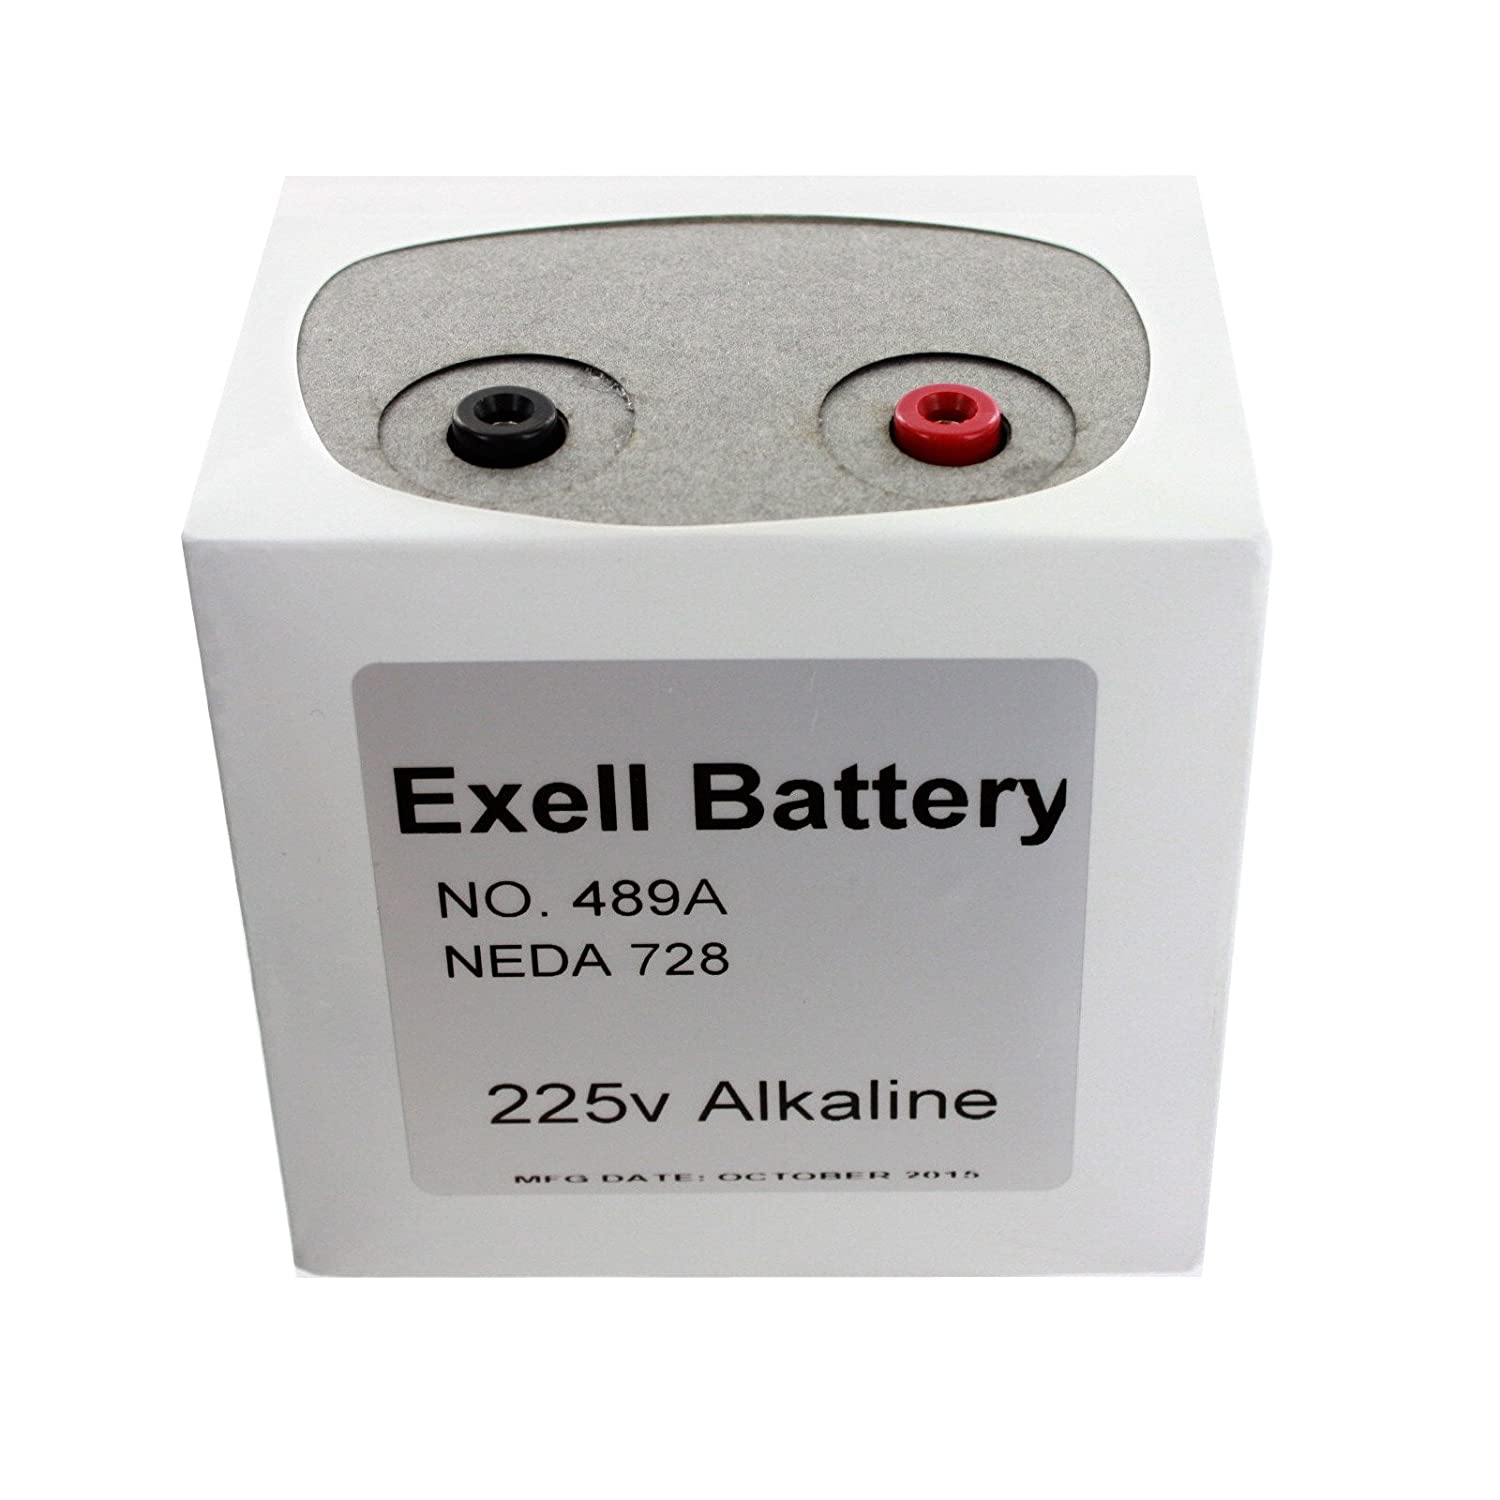 The 489A is a battery replacement for the NEDA 728 battery